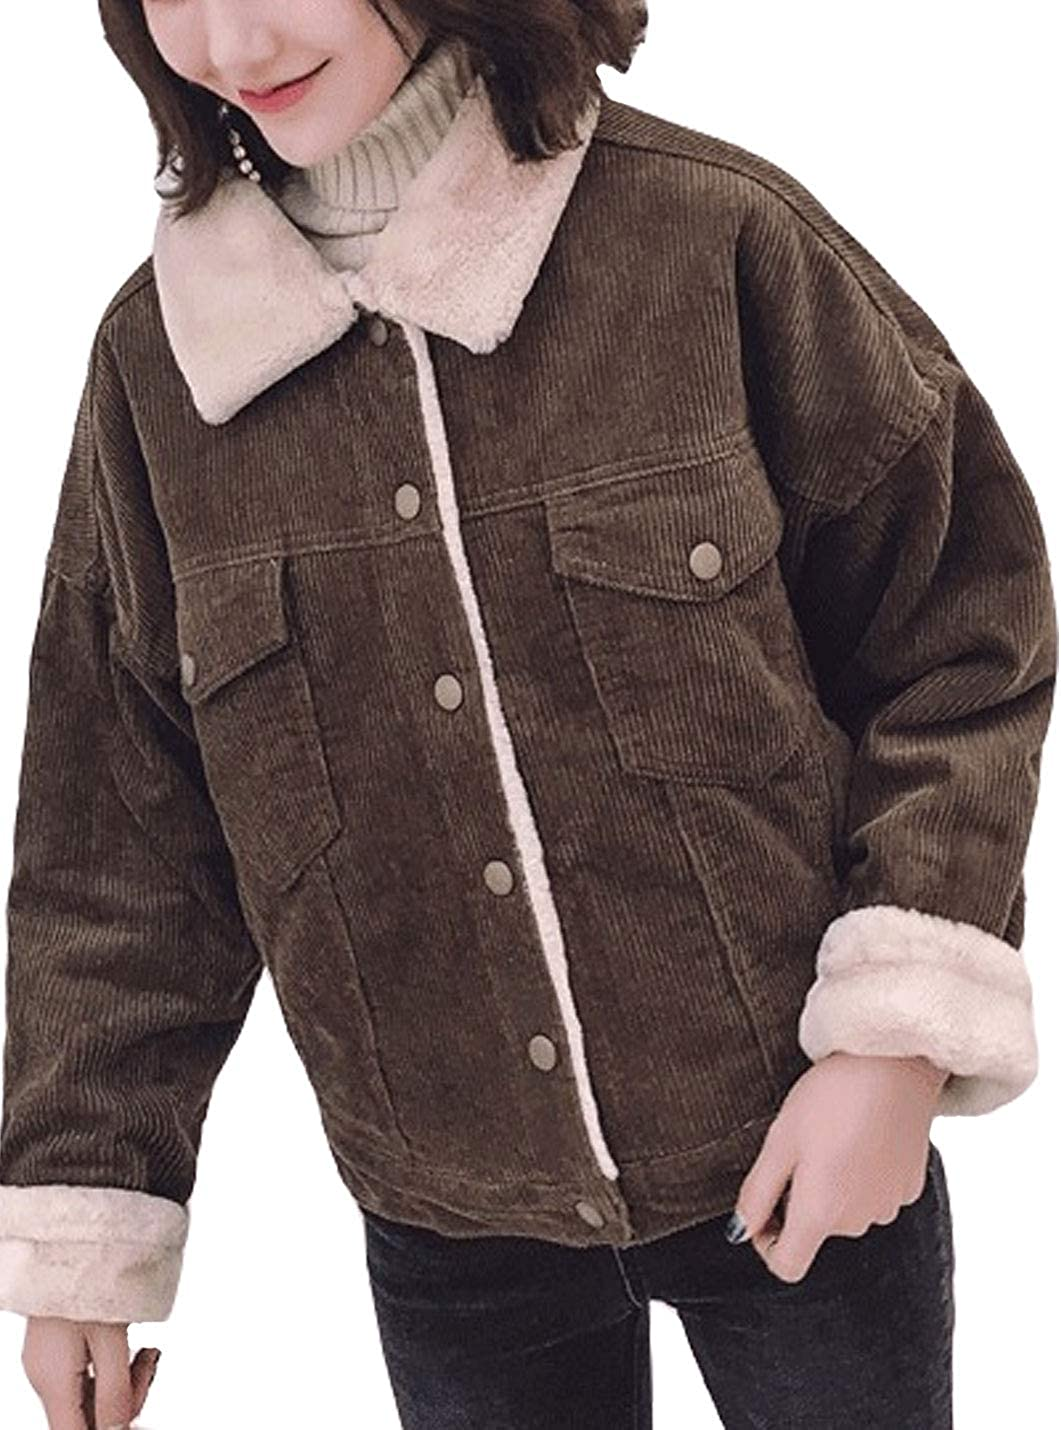 Bankeng Women's Winter Thickened Warm Quilted Jacket Corduroy Sherpa Fleece Lined Jacket